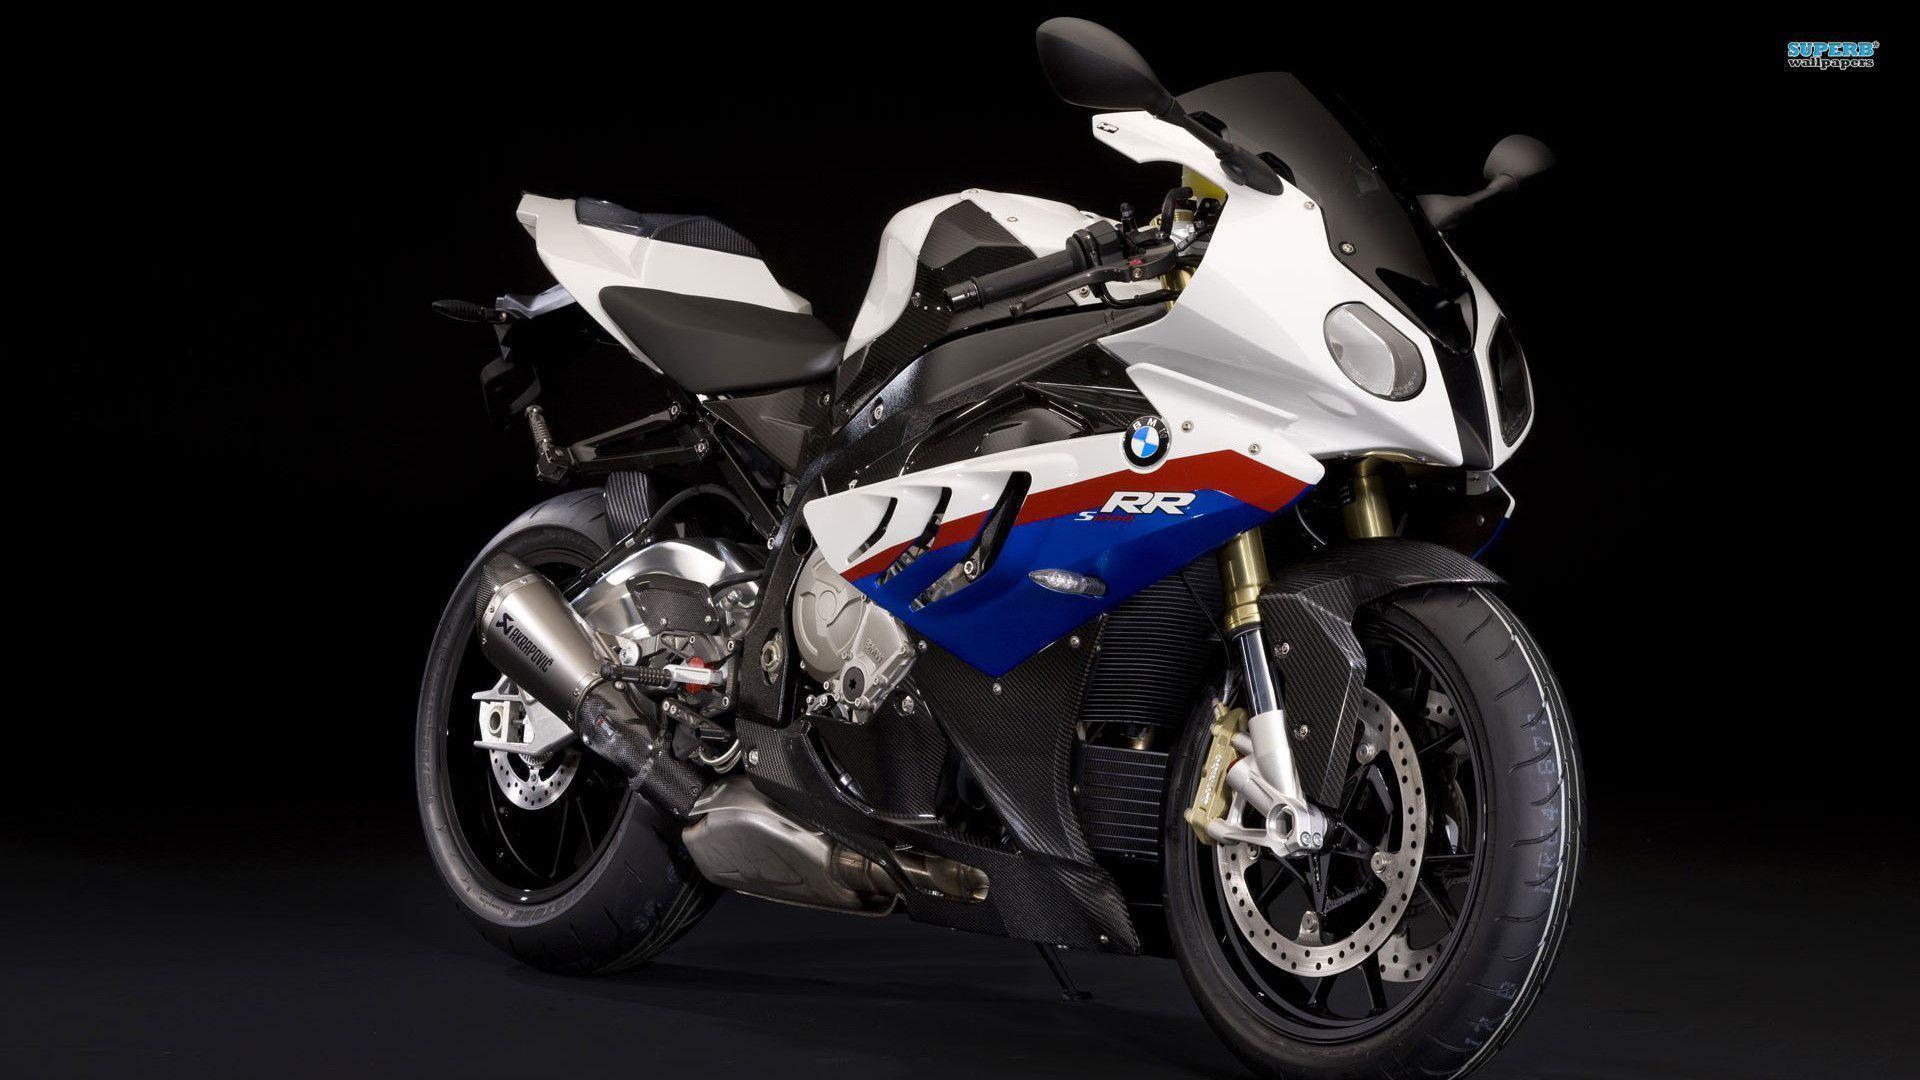 Bmw S1000rr Wallpaper 1920x1080 Motorcycle